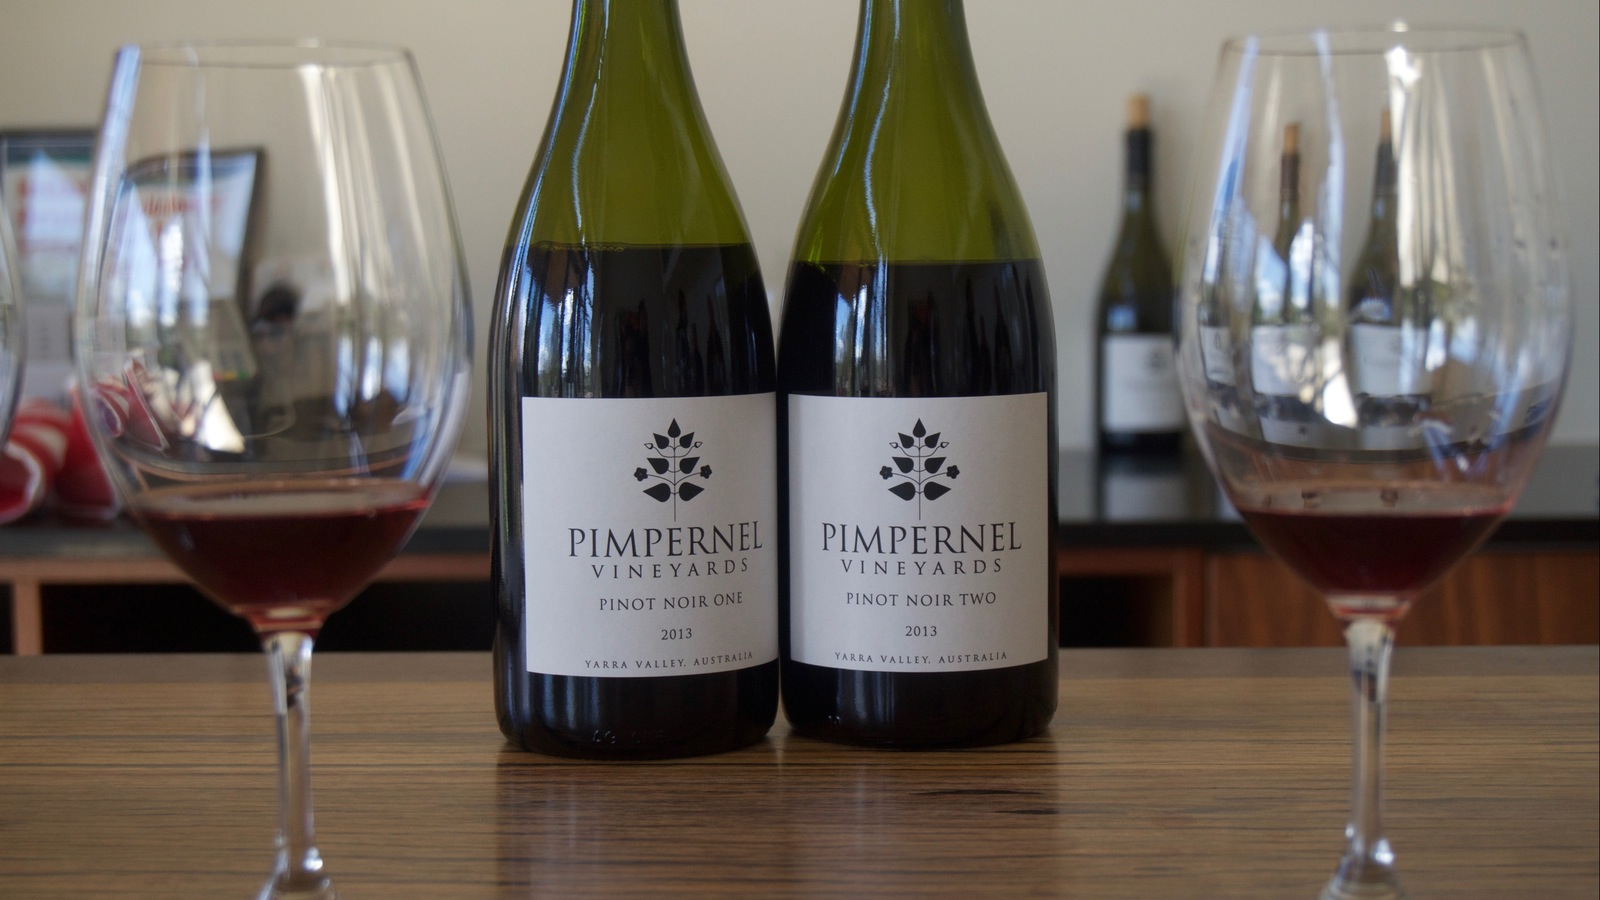 Wines at Pimpernel Winery